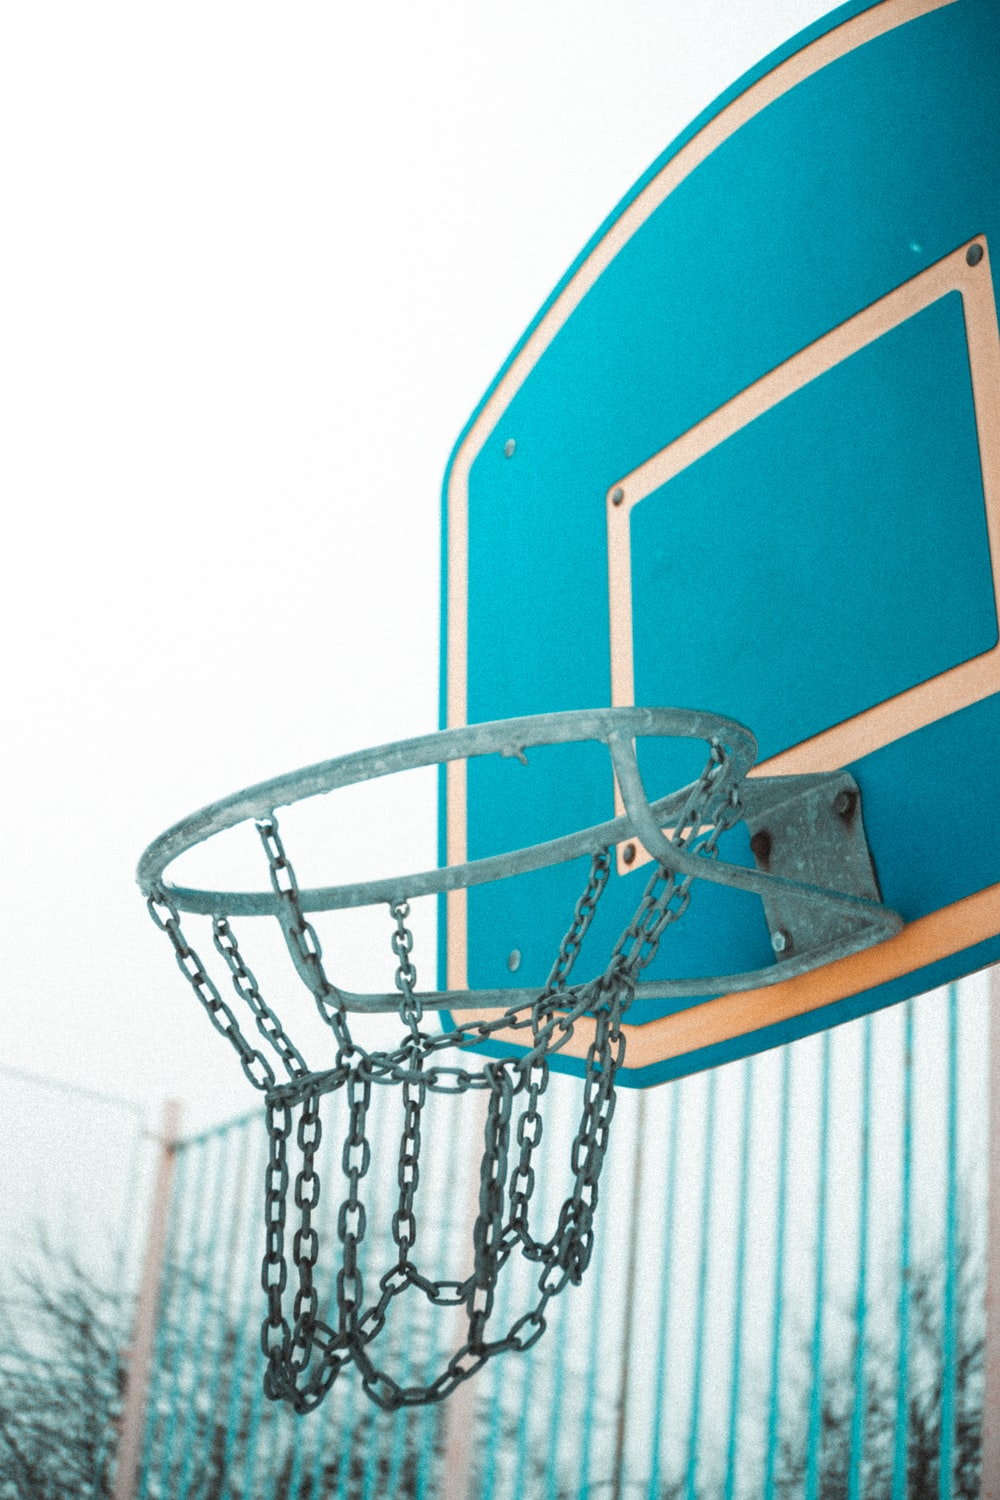 blue, gray, and white basketball hoop